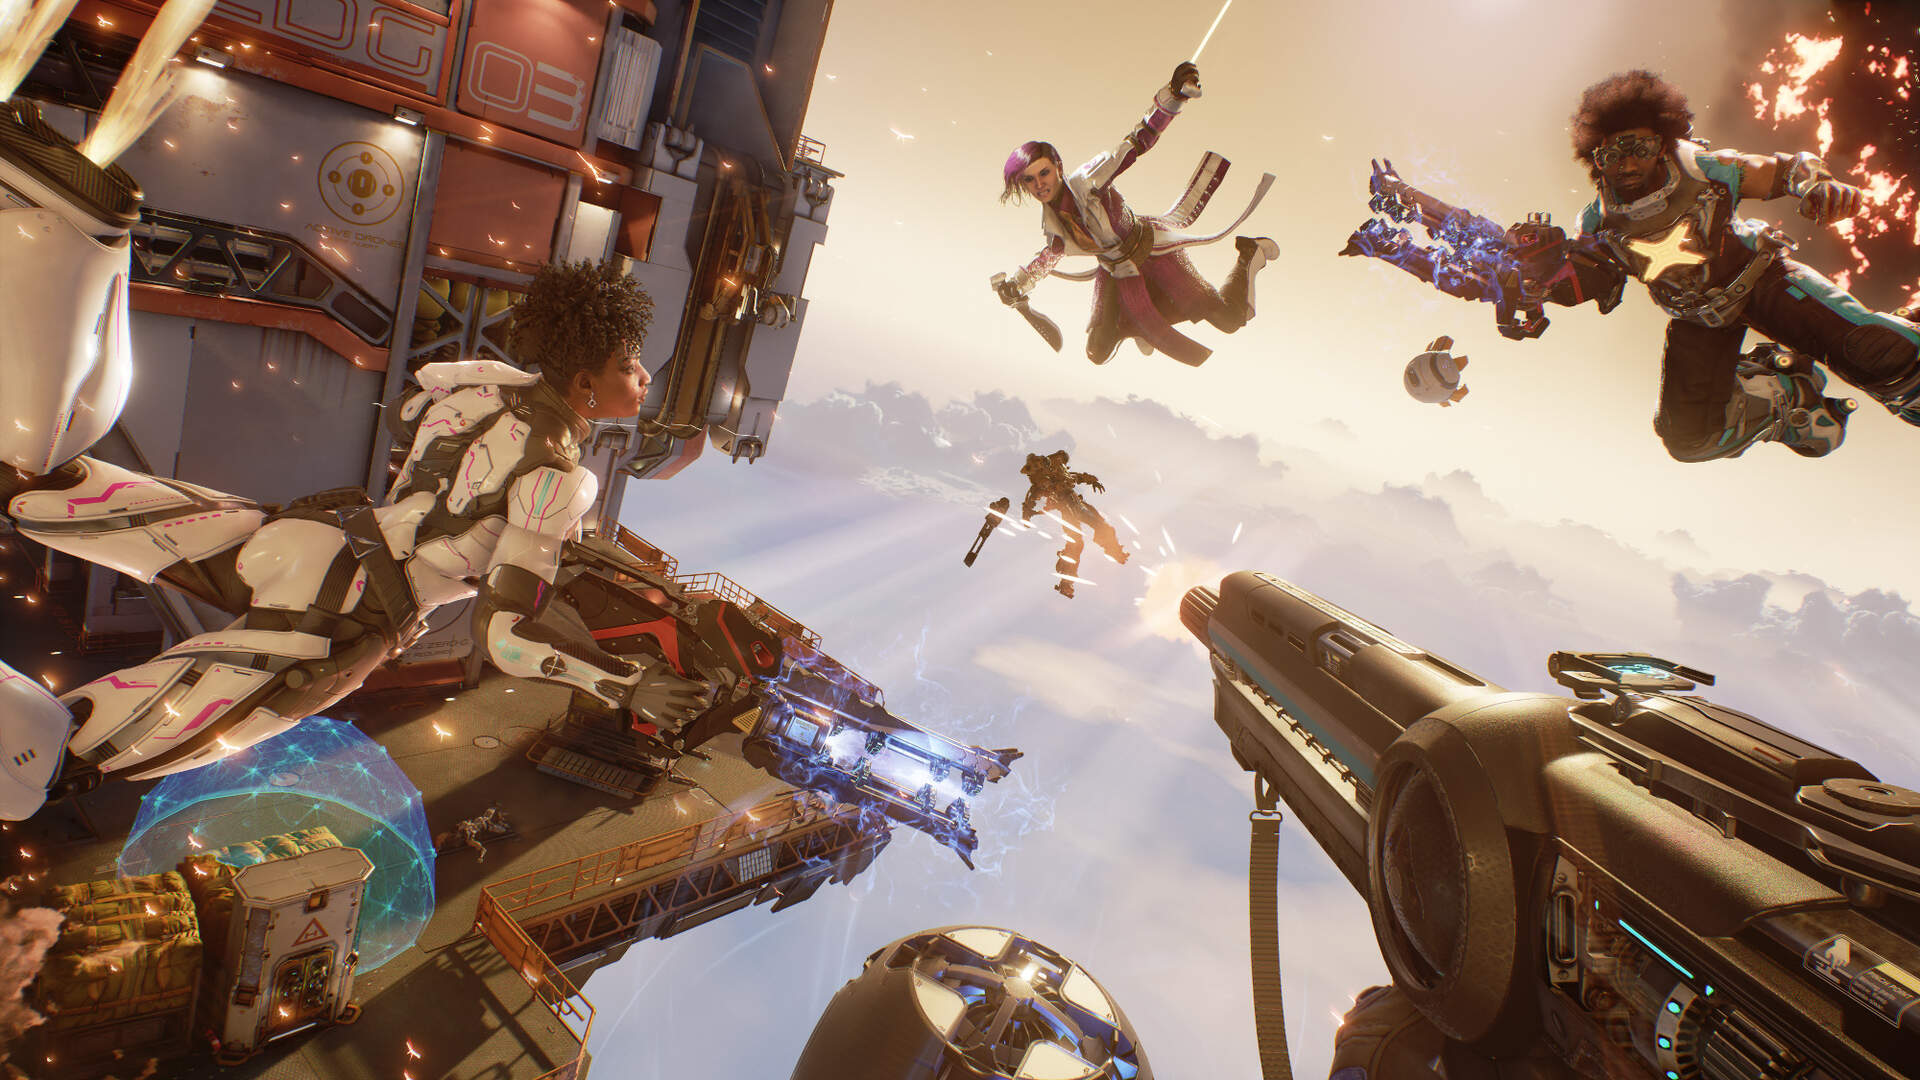 Lawbreakers, Radical Heights Studio Boss Key Productions is Closed Says Founder Cliff Bleszinski